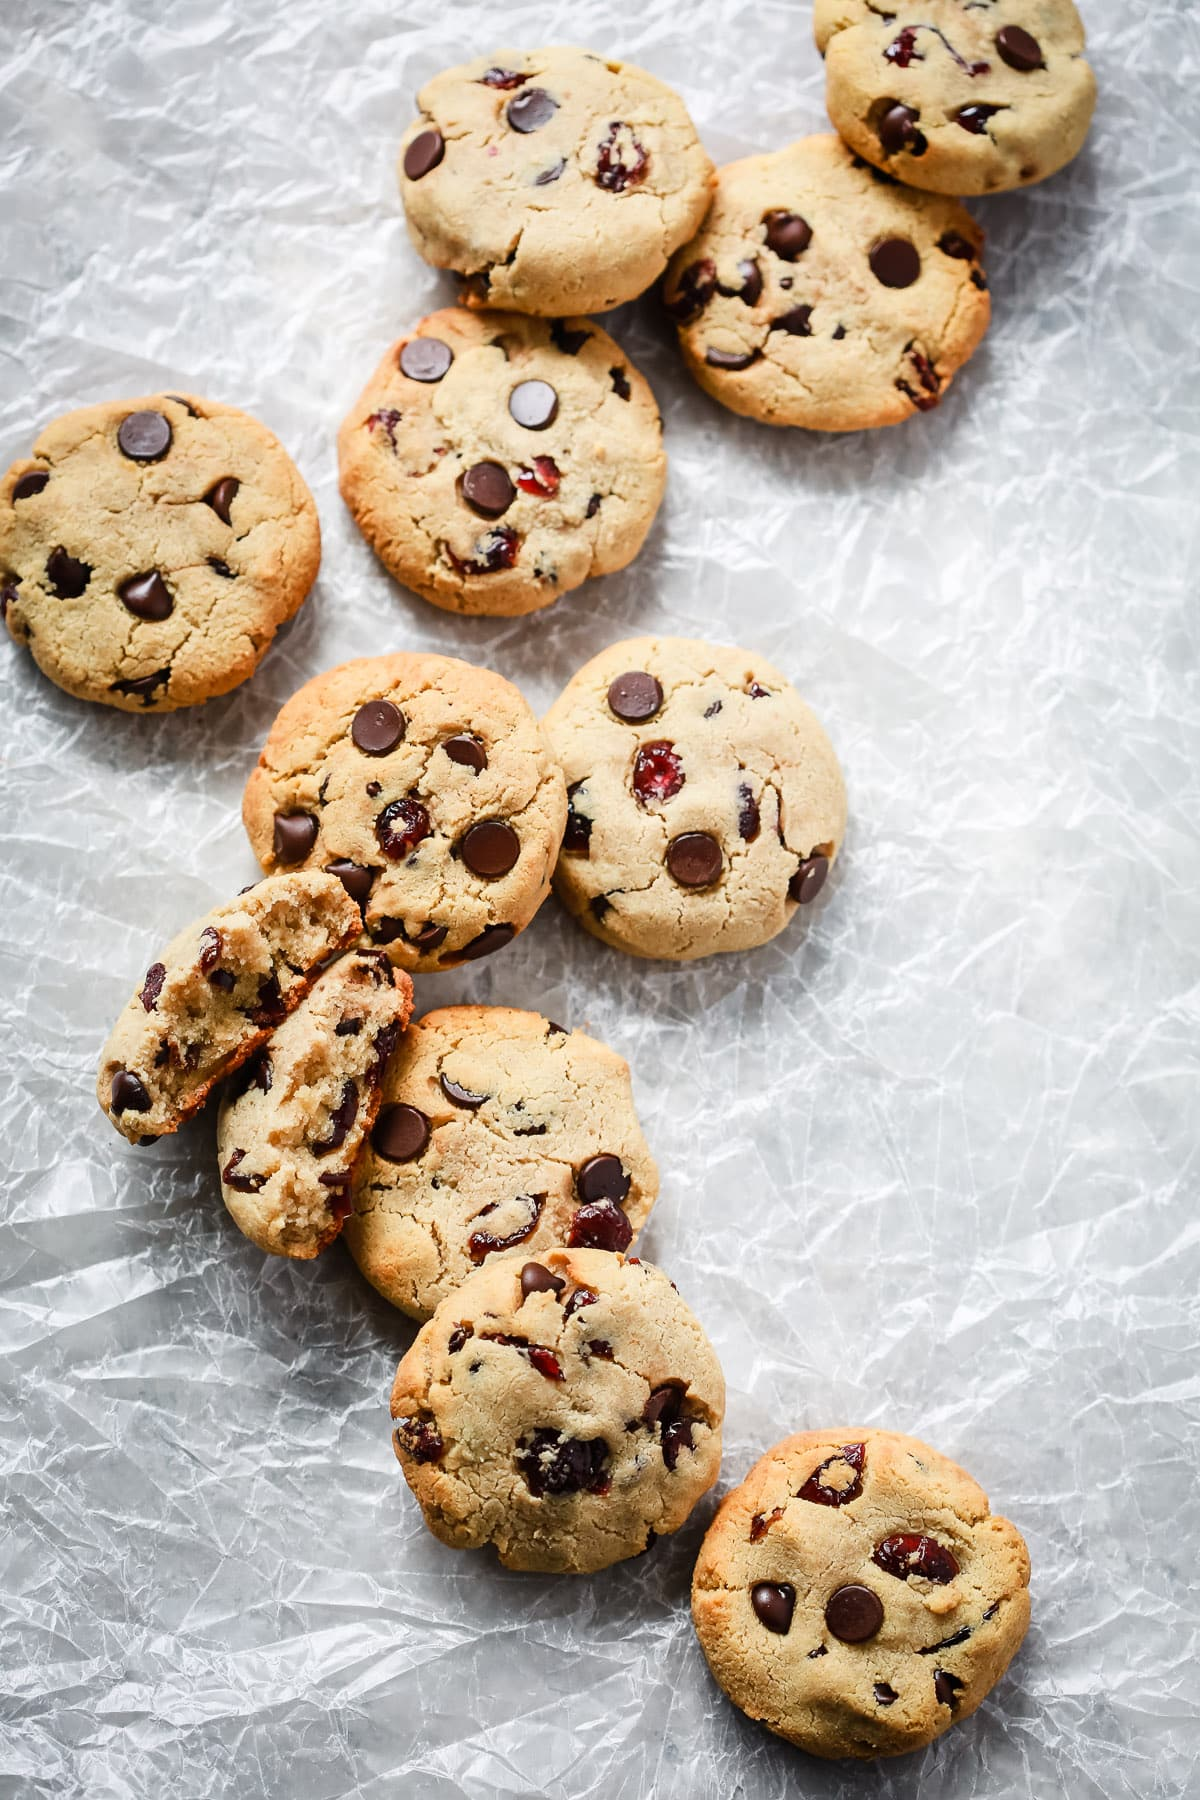 Cranberry Almond Chocolate Chip Cookies